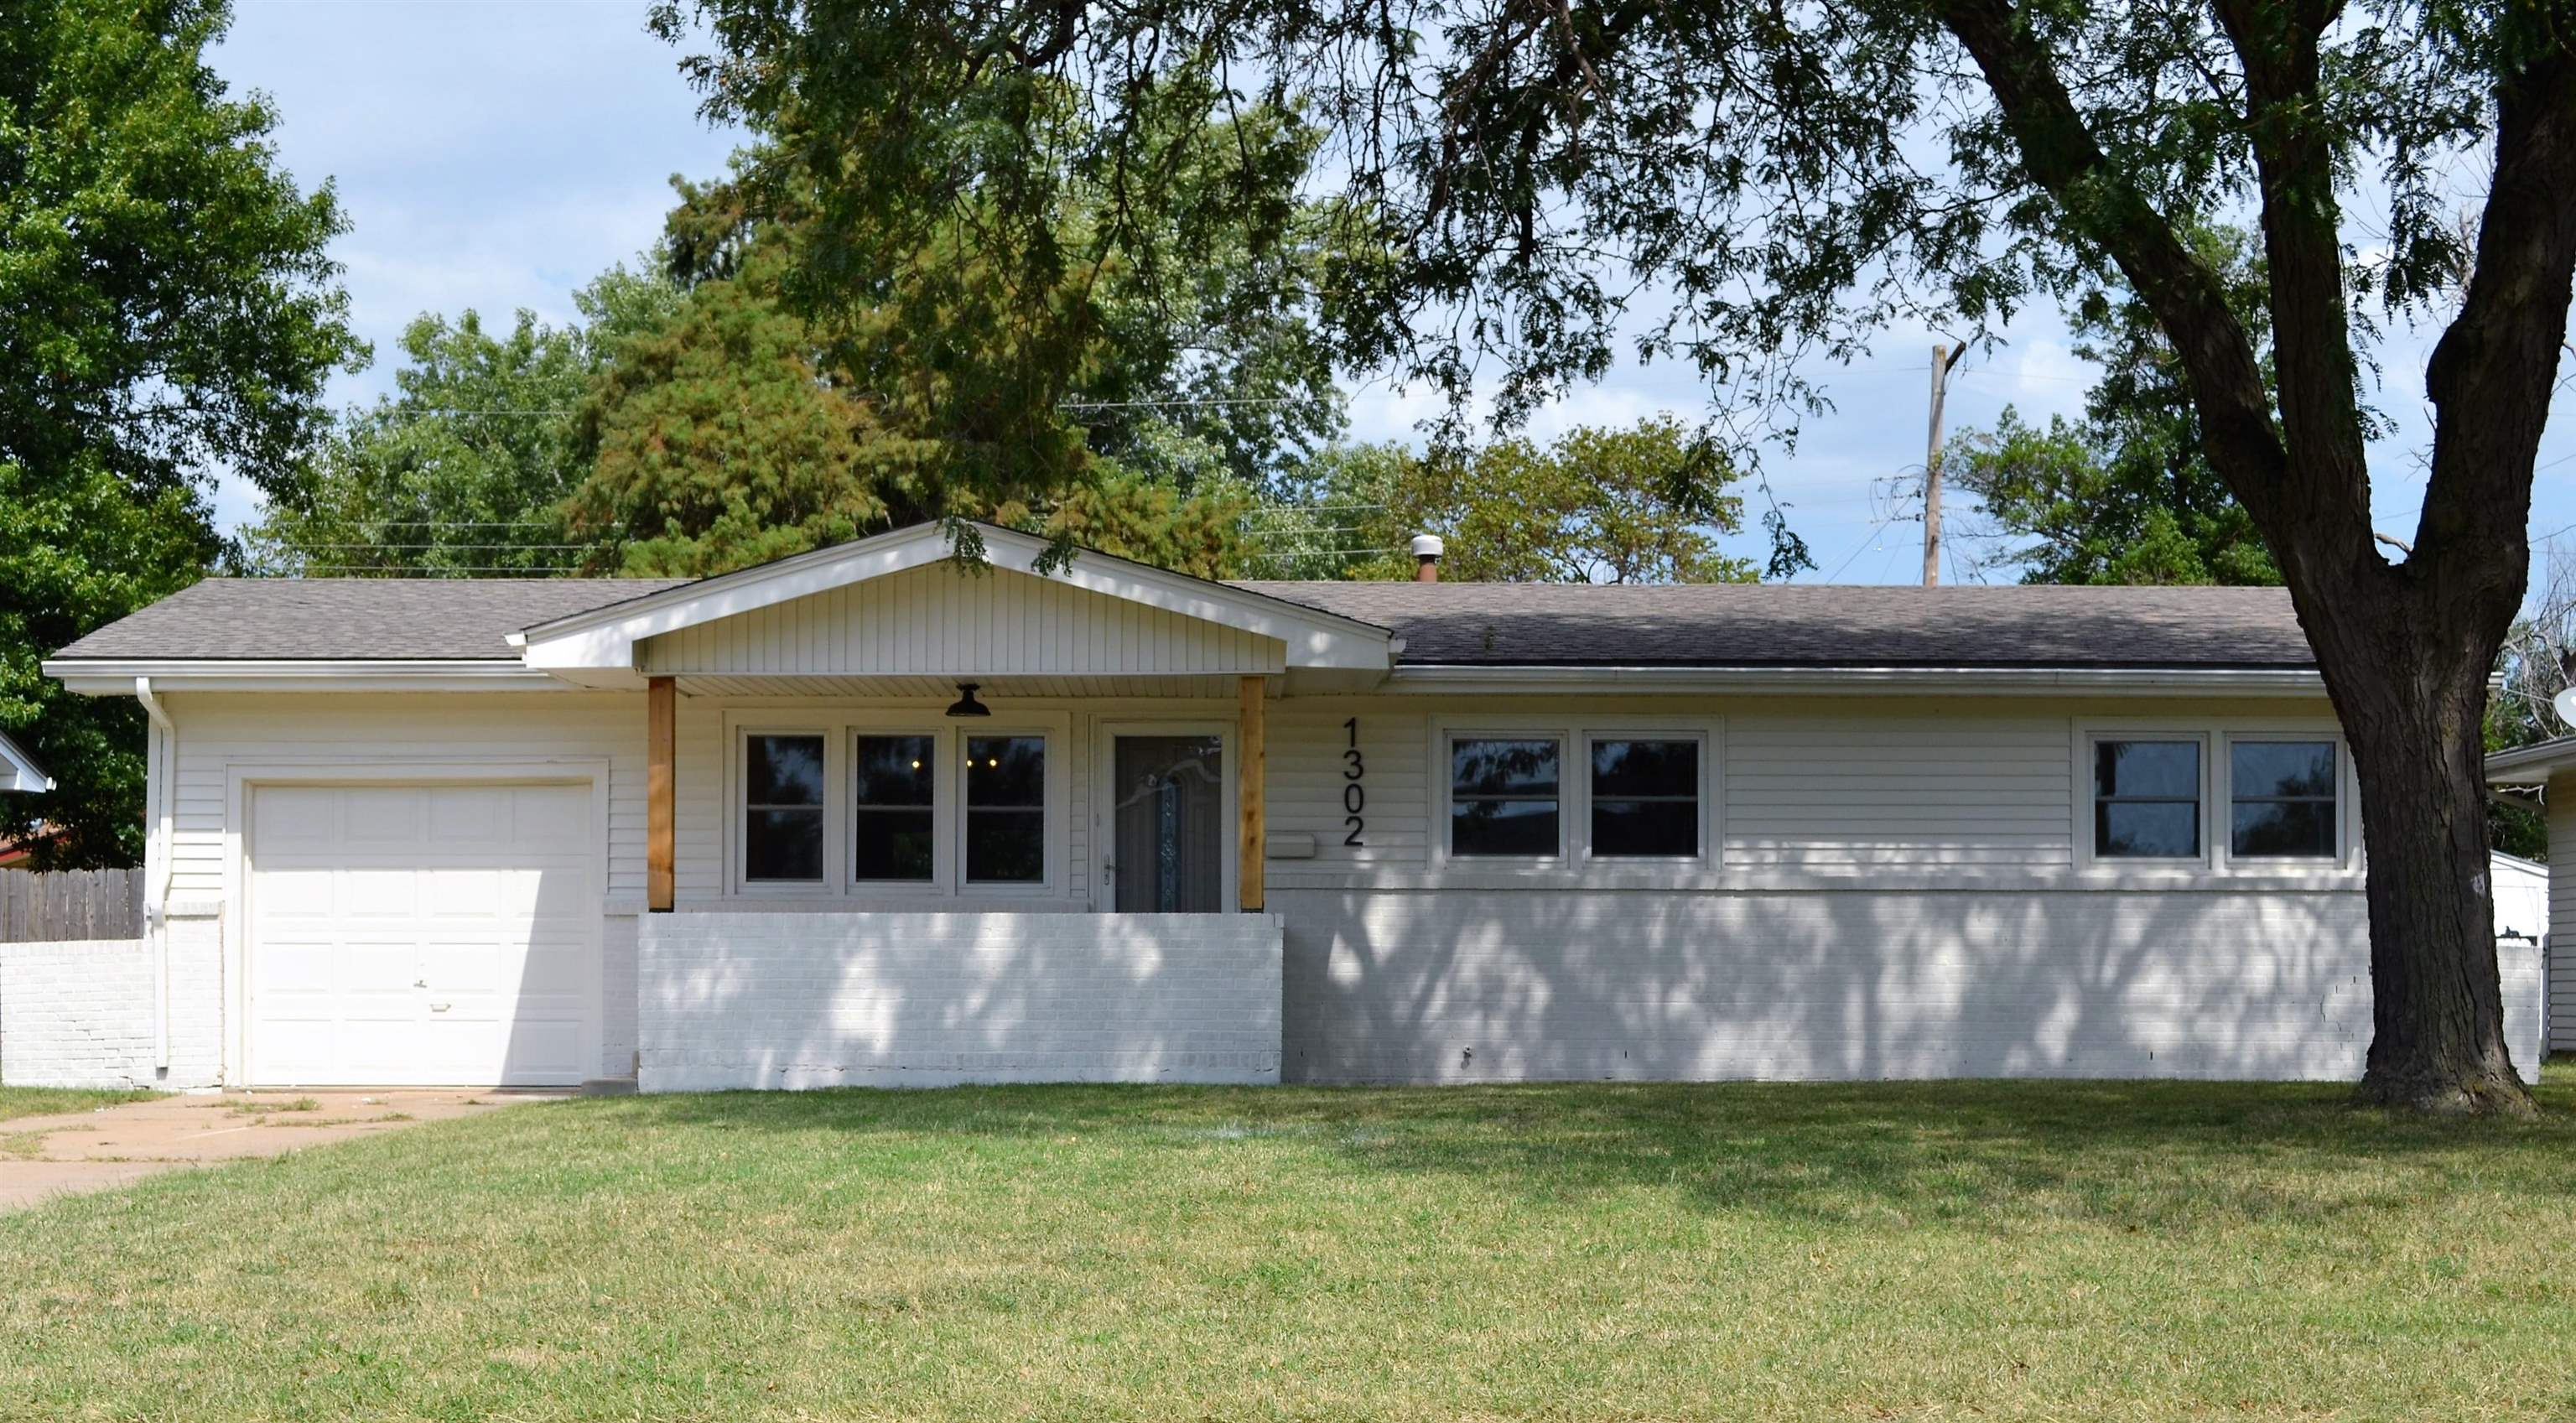 Completely remodeled and ready to move in! This is a great updated home in the heart of Wichita with